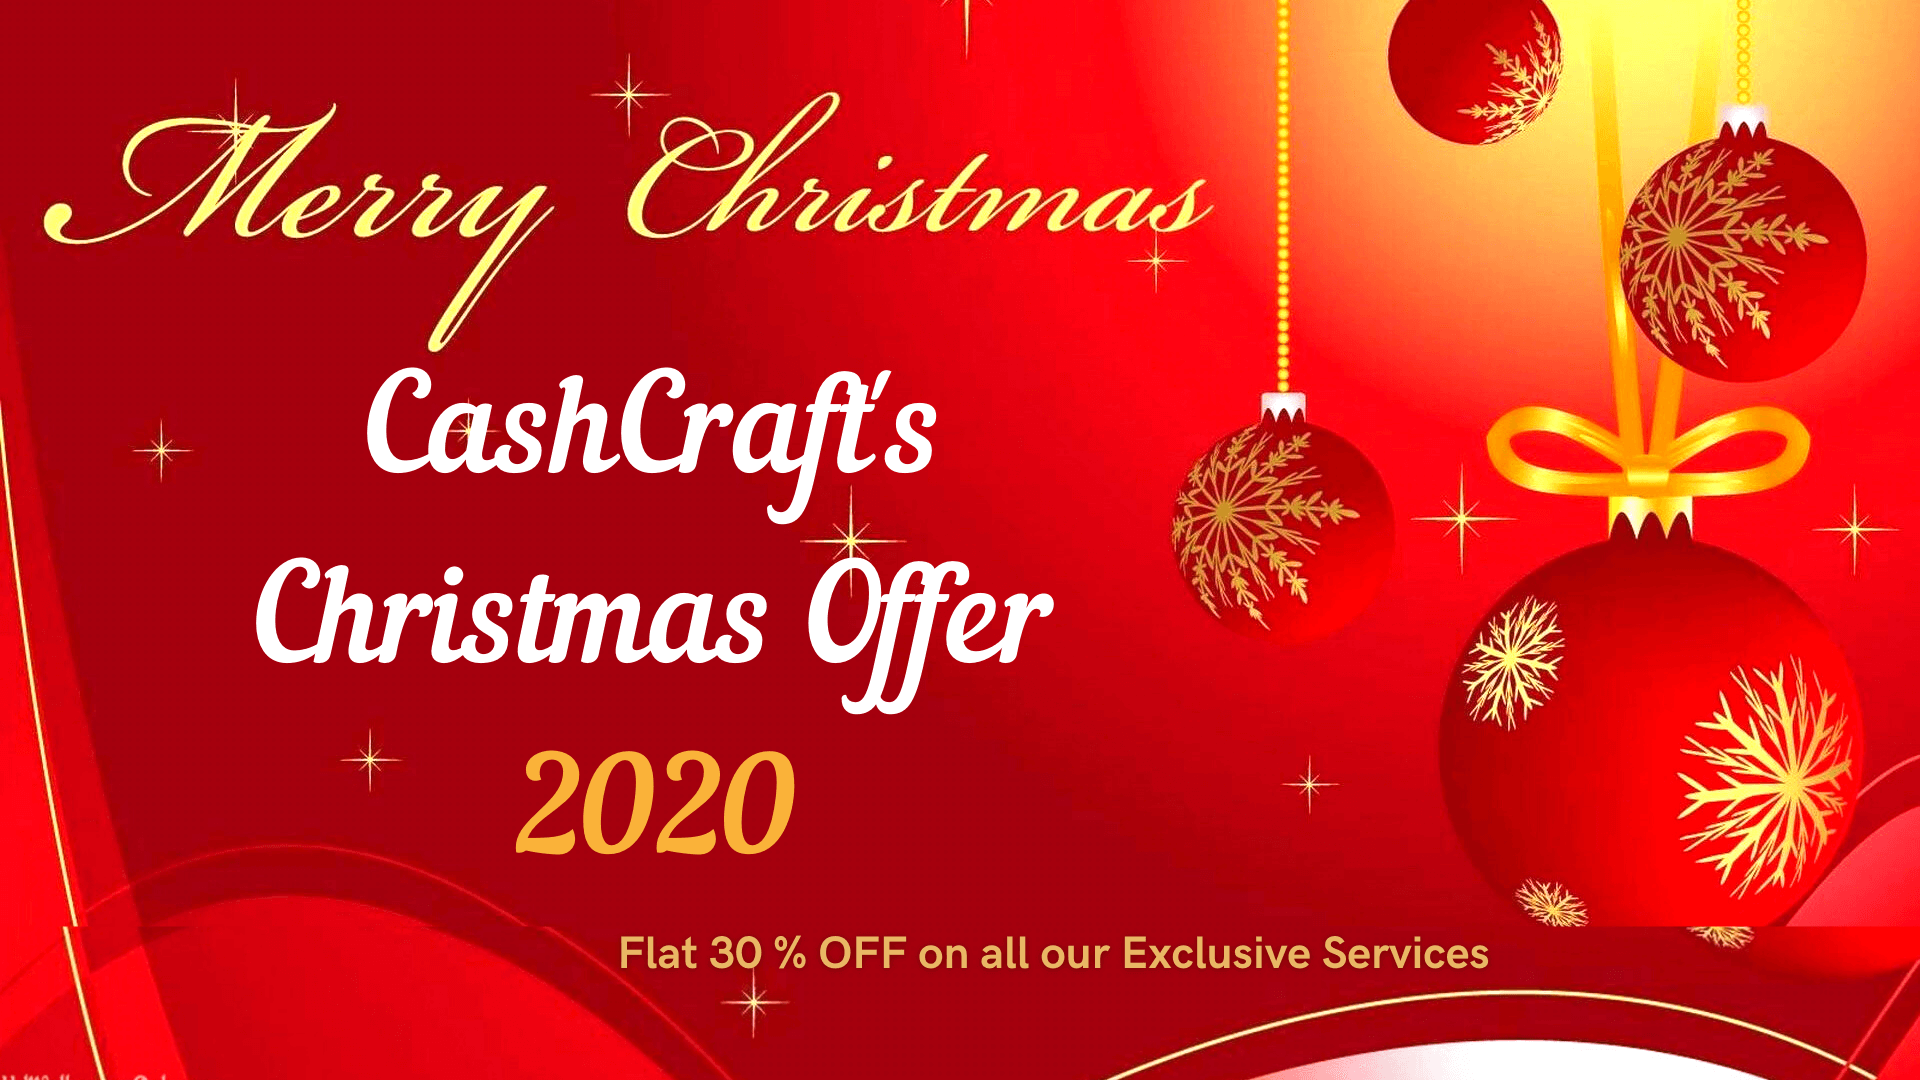 CashCraft's Christmas Offers 2020 | Flat 30 % Off